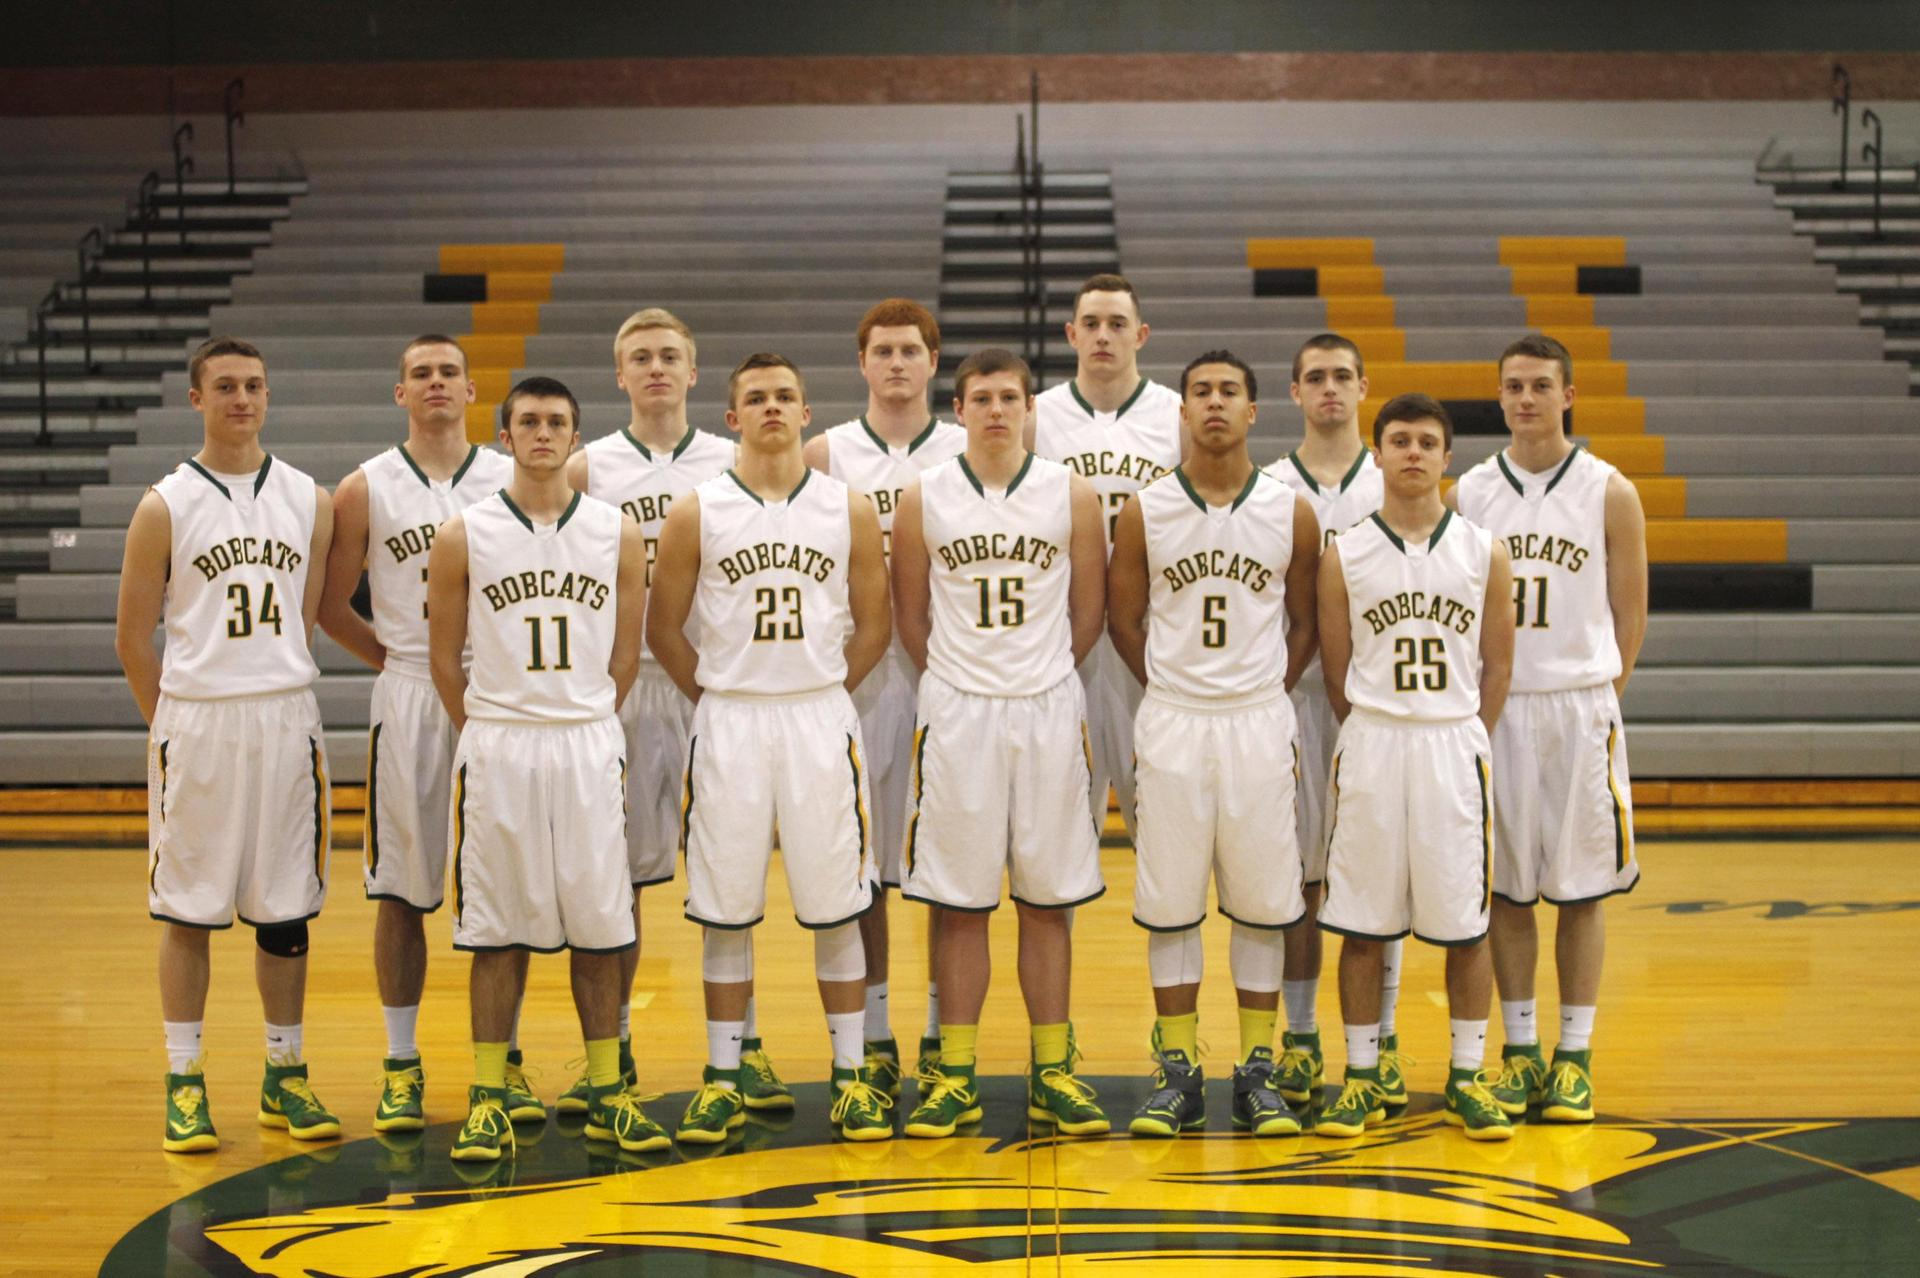 2015 4A State Basketball Runner Up Team Photo